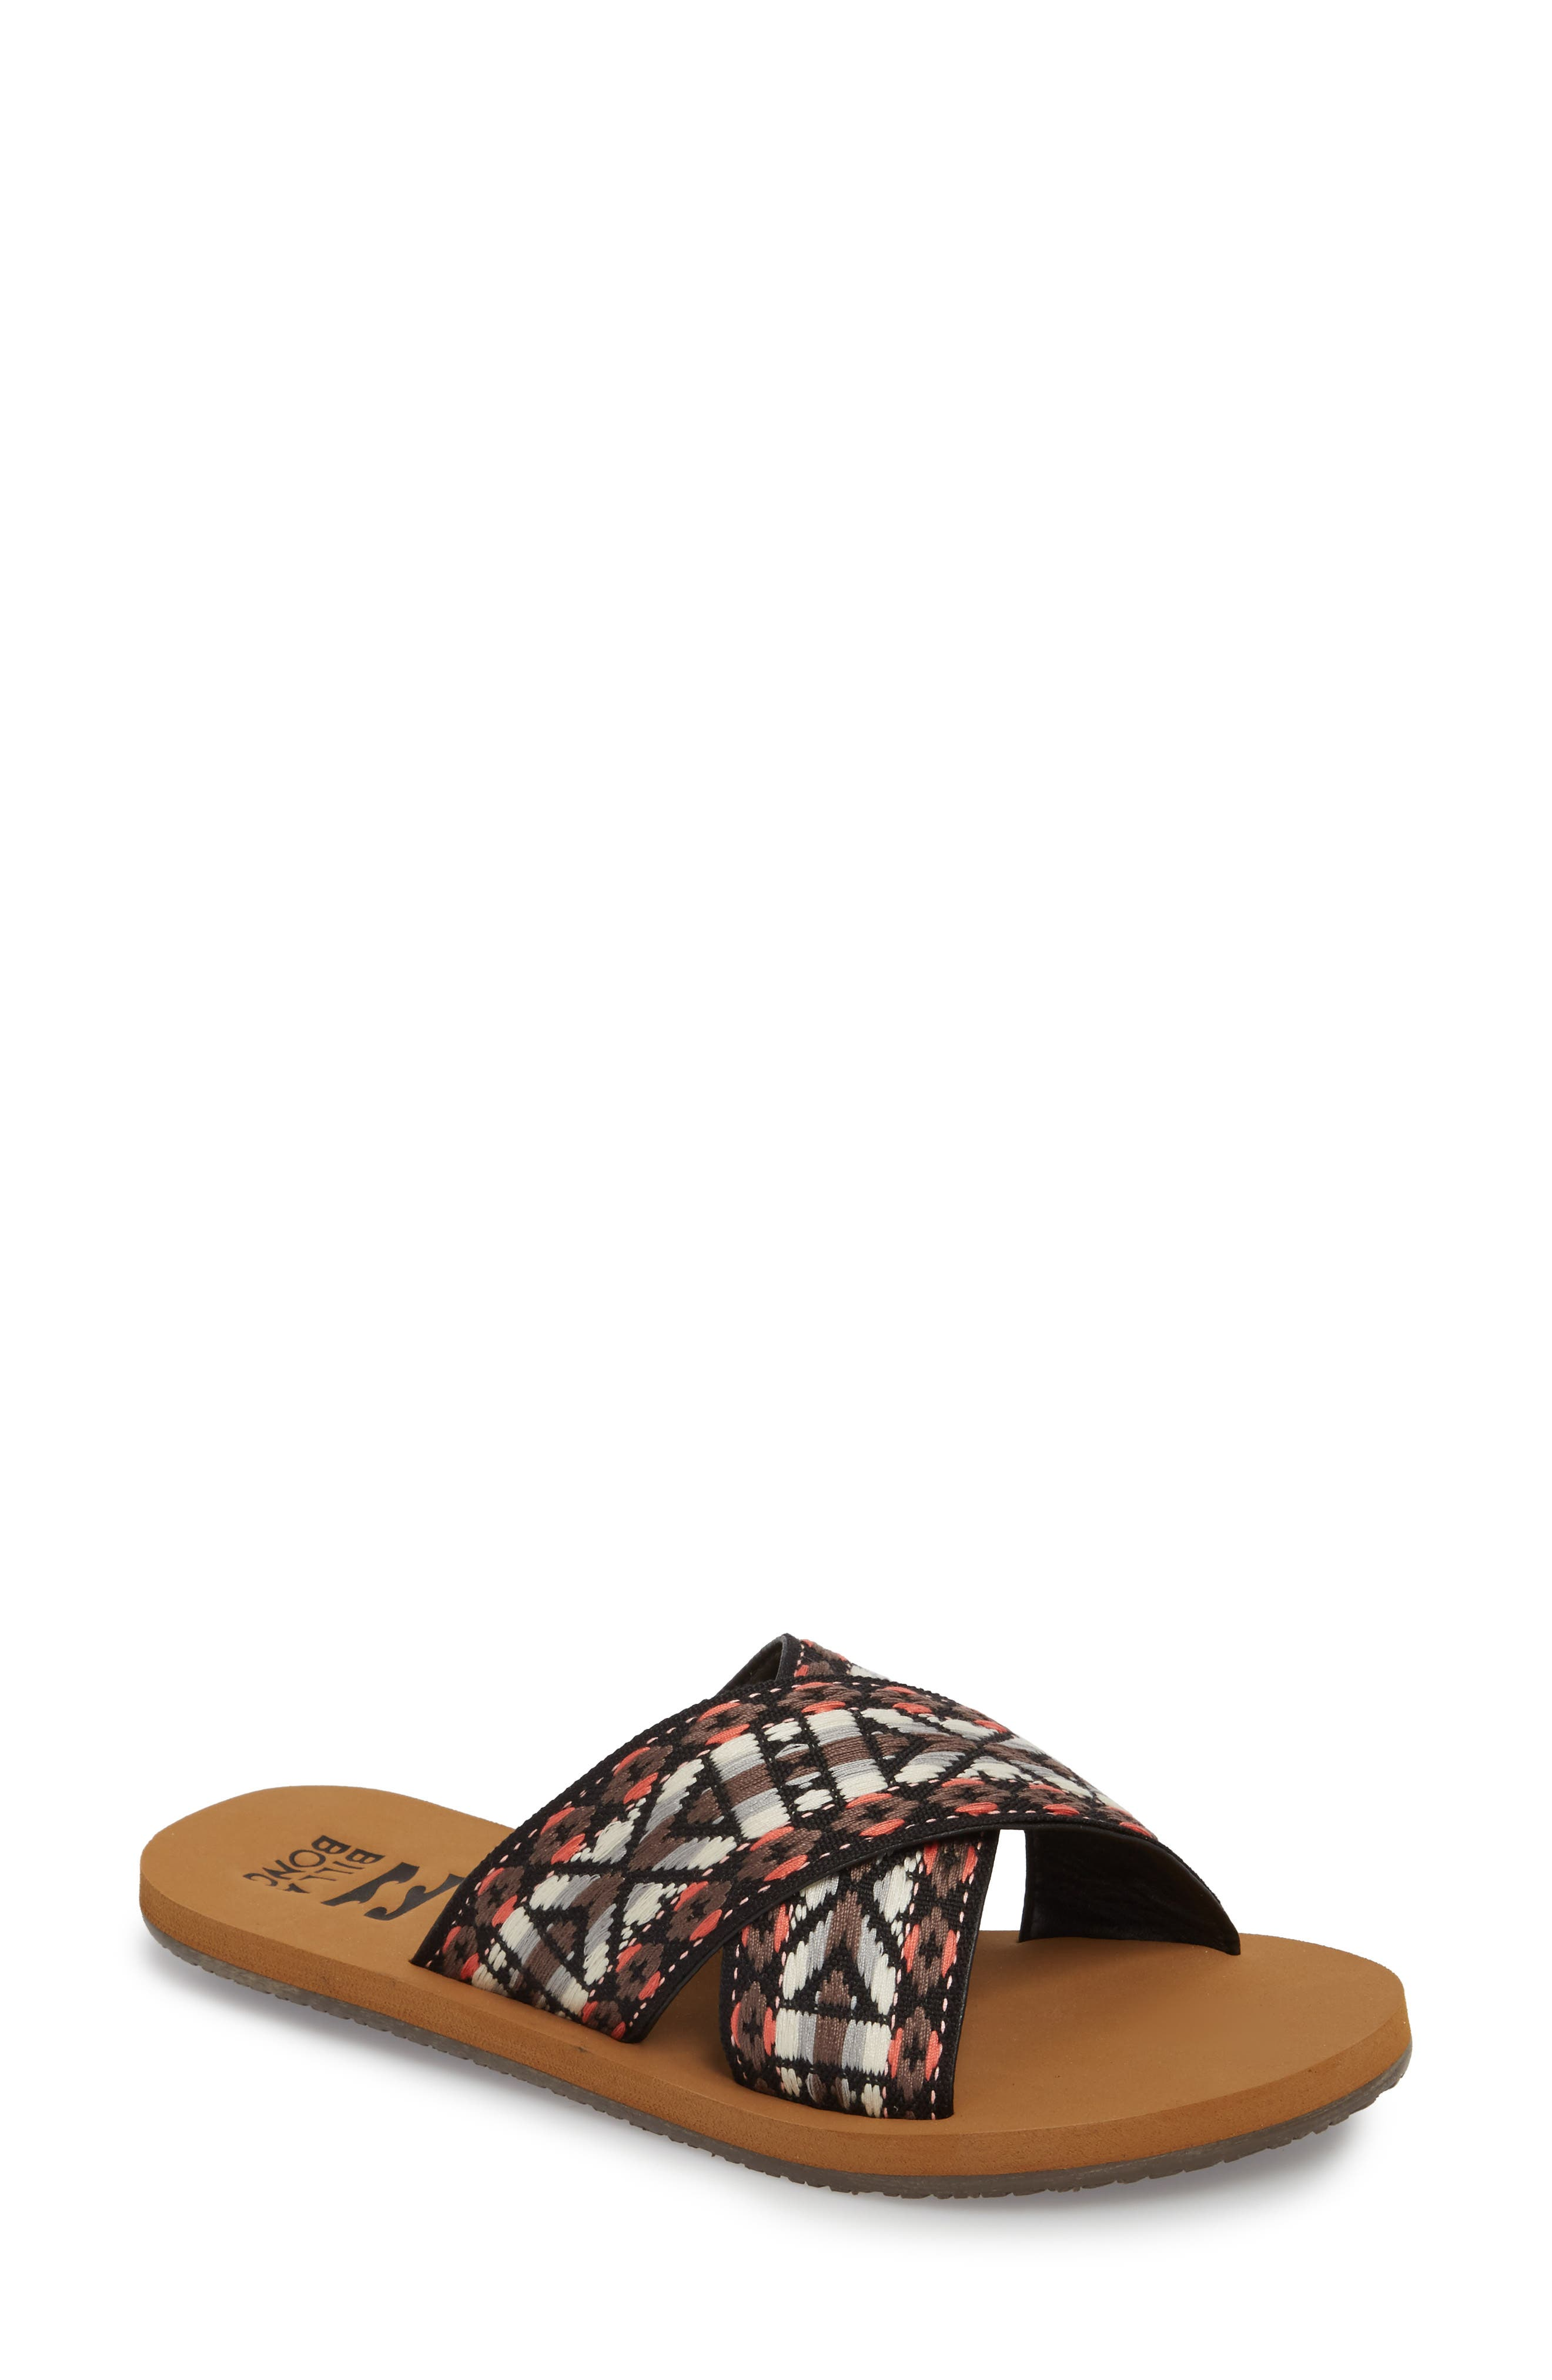 Surf Bandit Slide Sandal,                         Main,                         color, Vintage Coral